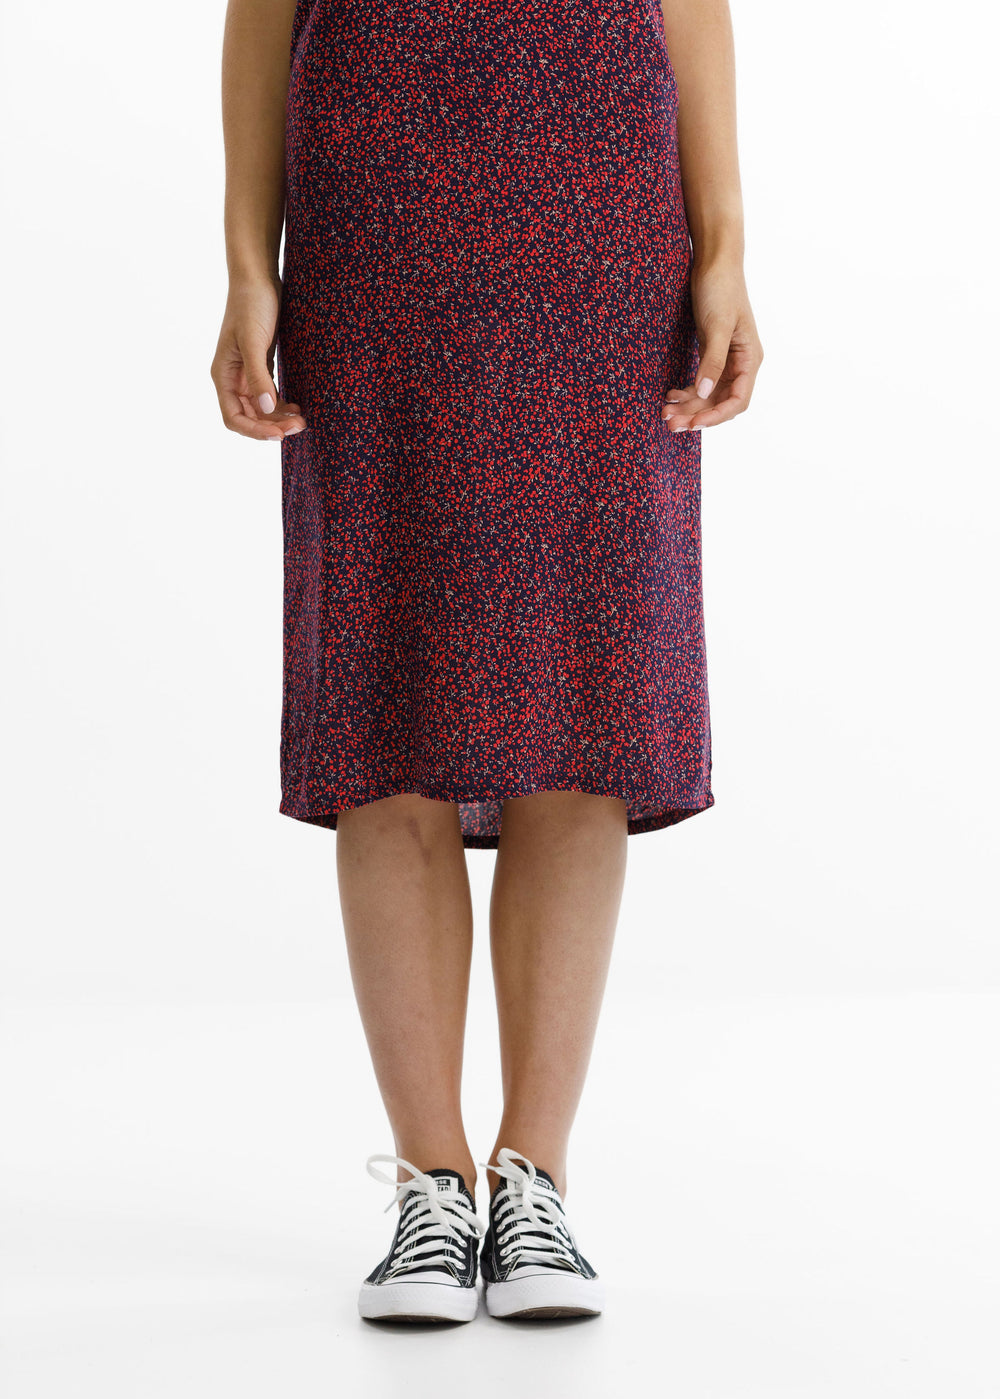 WILDE DRESS - Ditsy Red